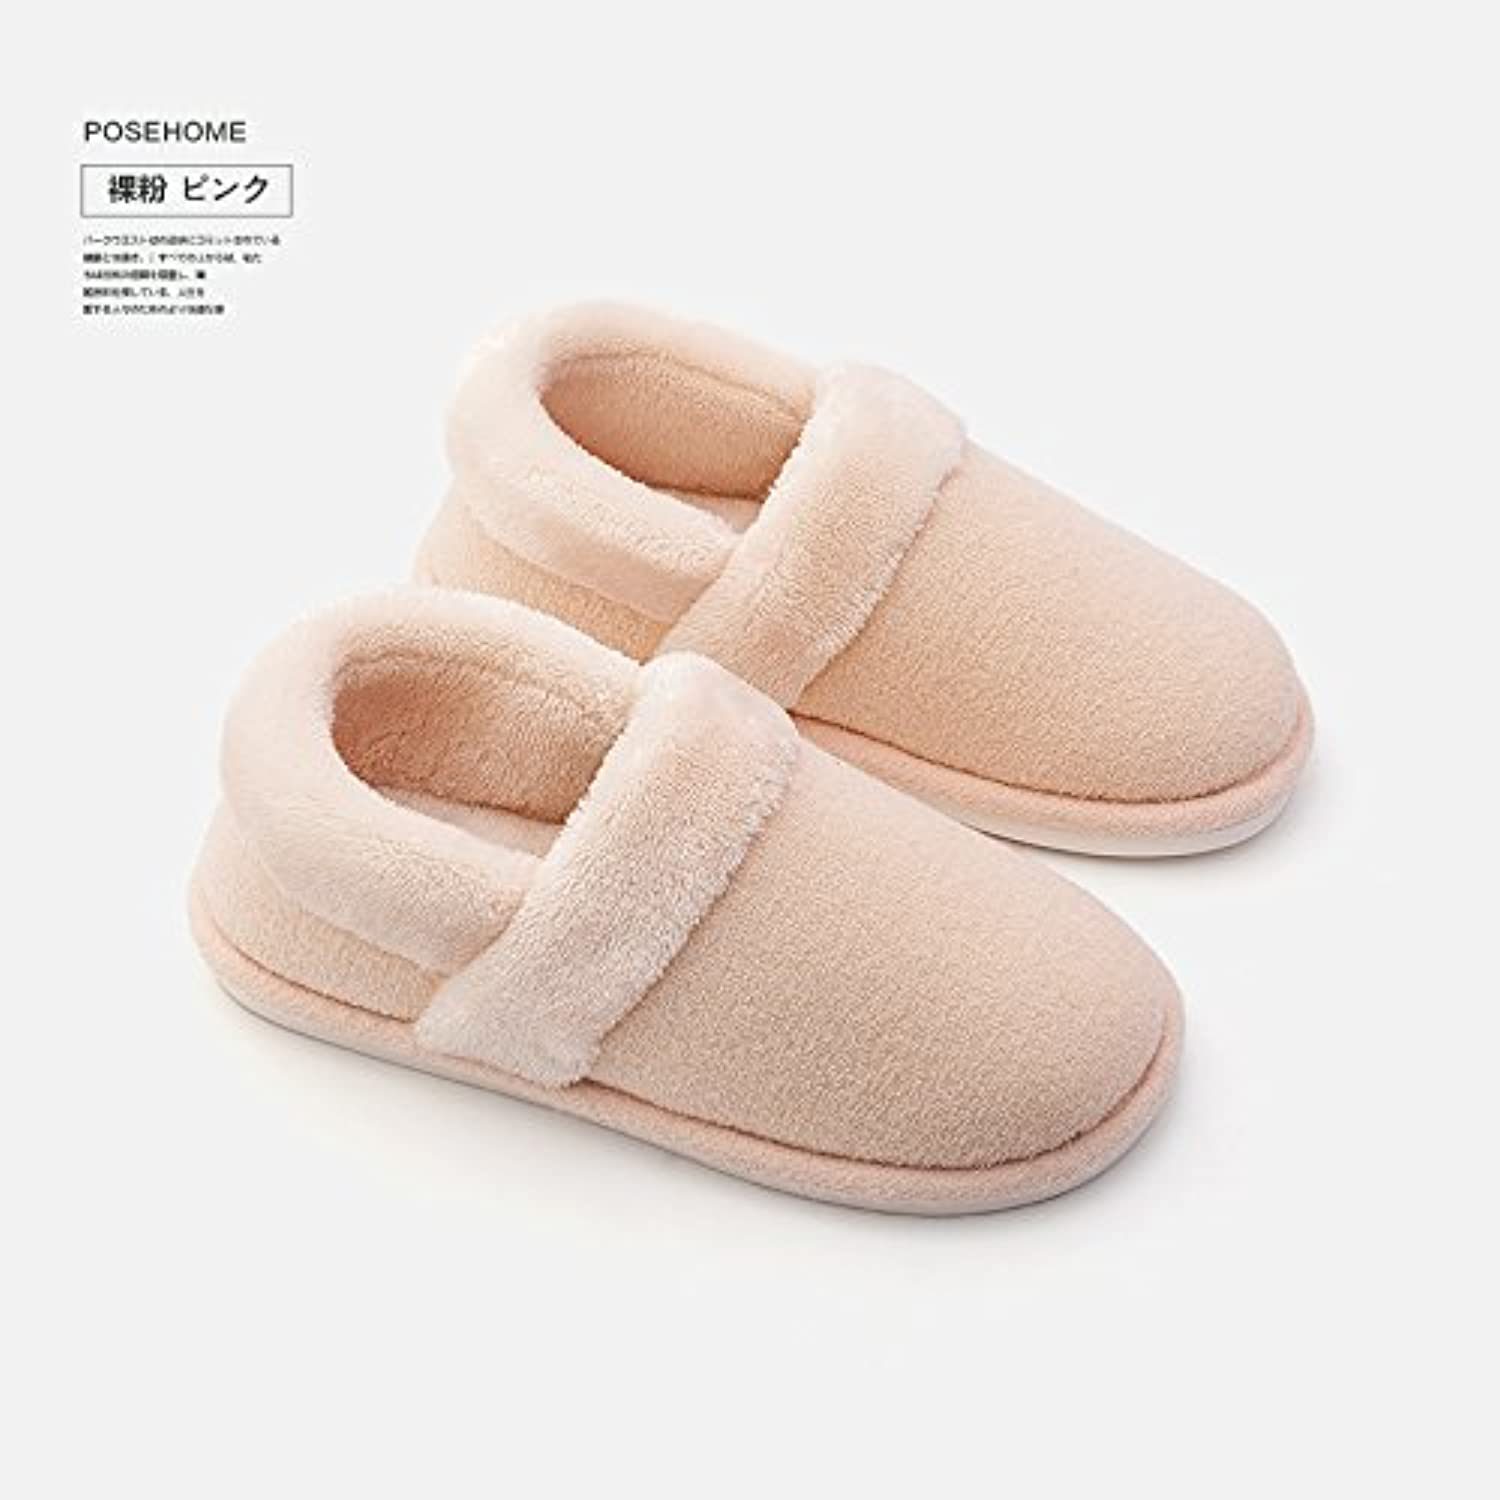 LaxBa Femmes ShoesBare Hommes chauds d'hiver Chaussons peluche antiglisse intérieur Cotton-Padded ShoesBare Femmes powderFemale... - B0785HKNTD - 140f79